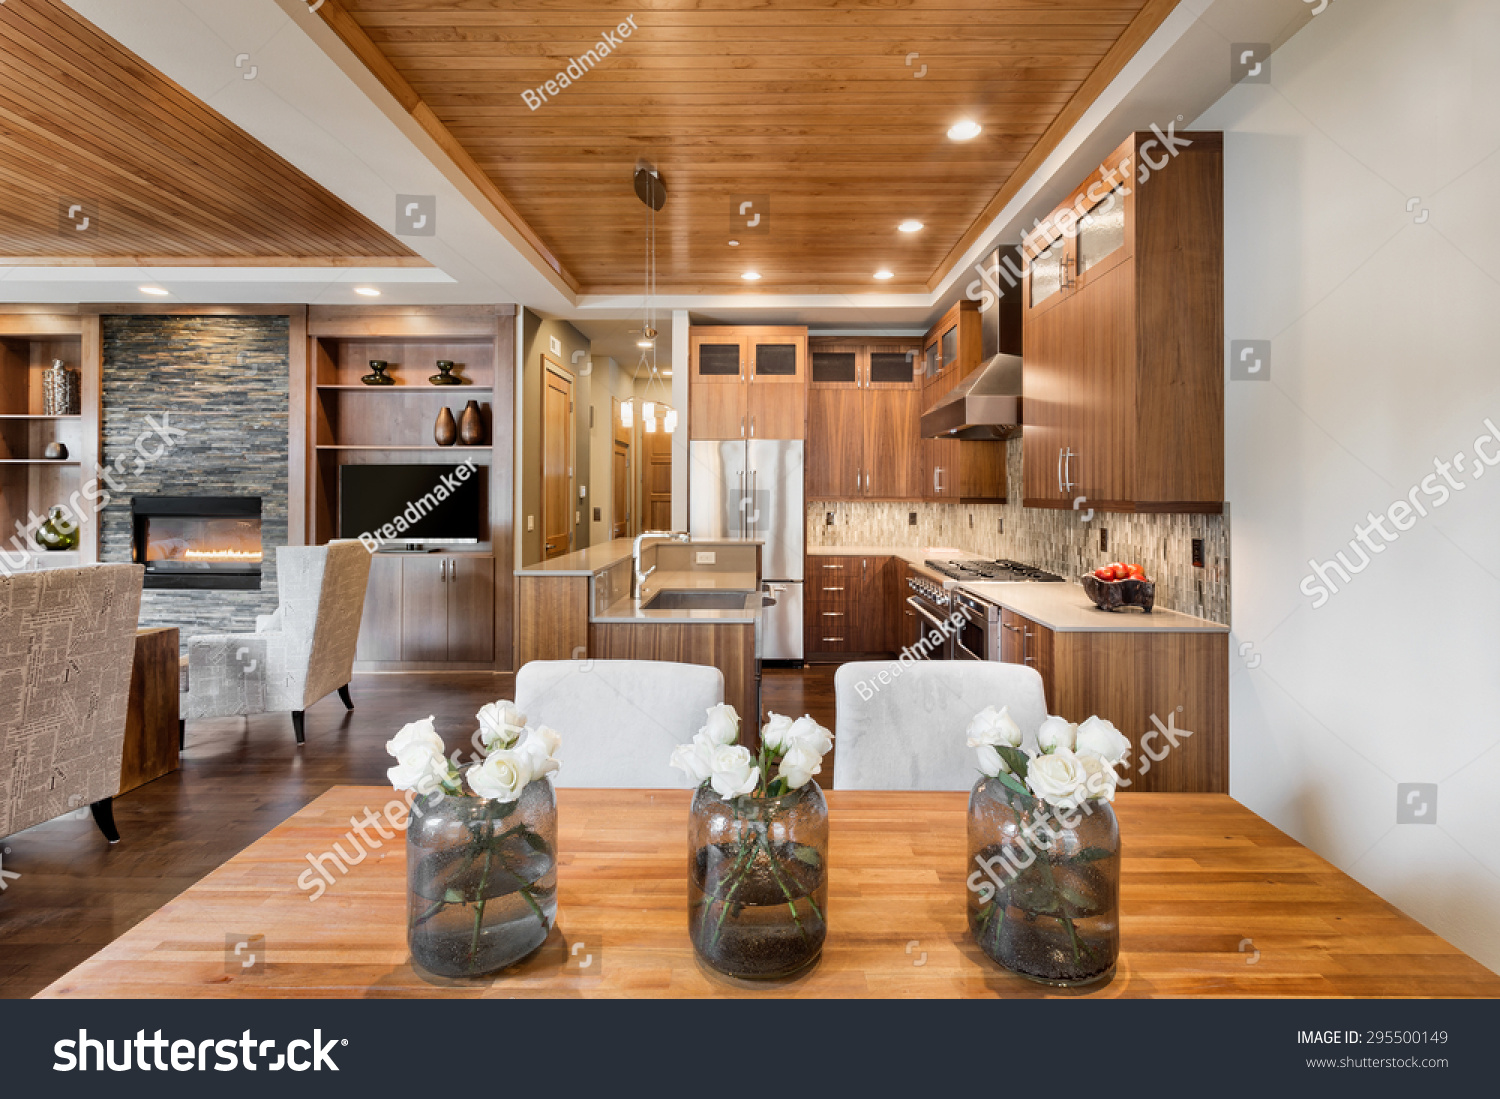 Beautiful Home Interior With Open Floor Plan Includes